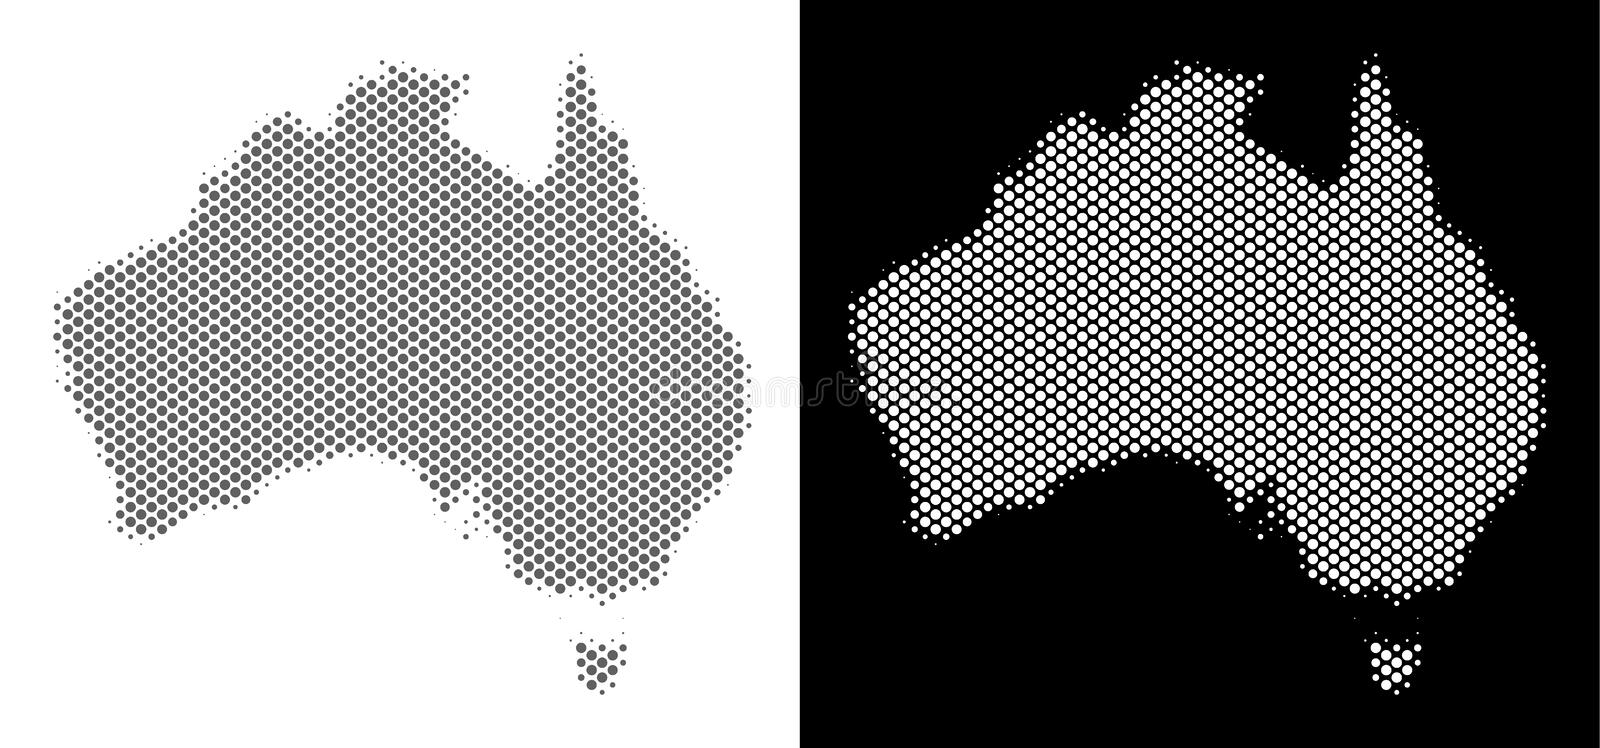 Halftone Australia Map. Halftone round spot Australia map. Vector territorial maps in gray and white colors on white and black backgrounds. Abstract mosaic of stock illustration